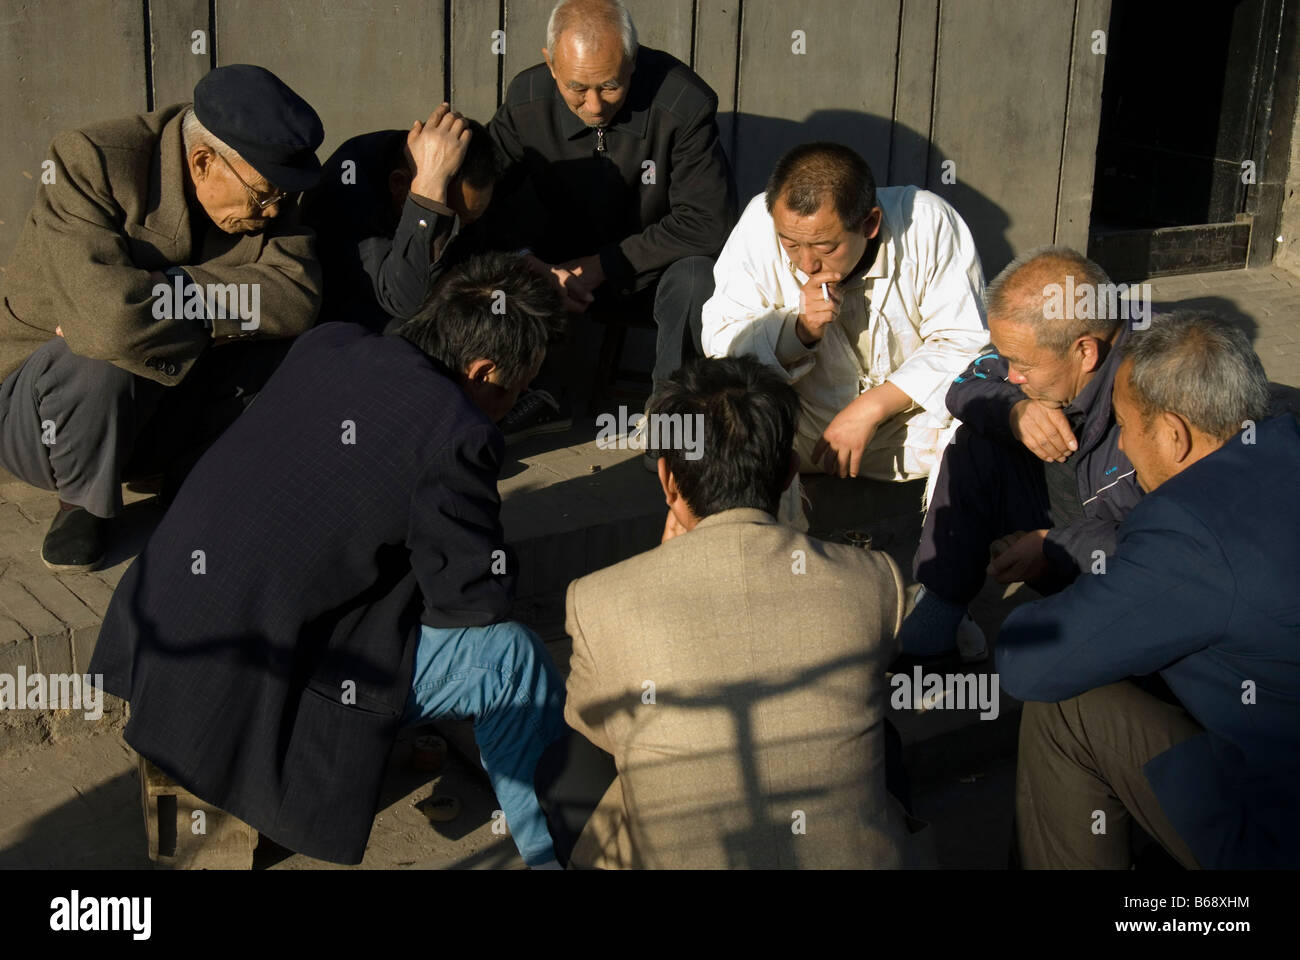 Men engrossed in a game of checkers, Pingyao, Shanxi Province, China - Stock Image